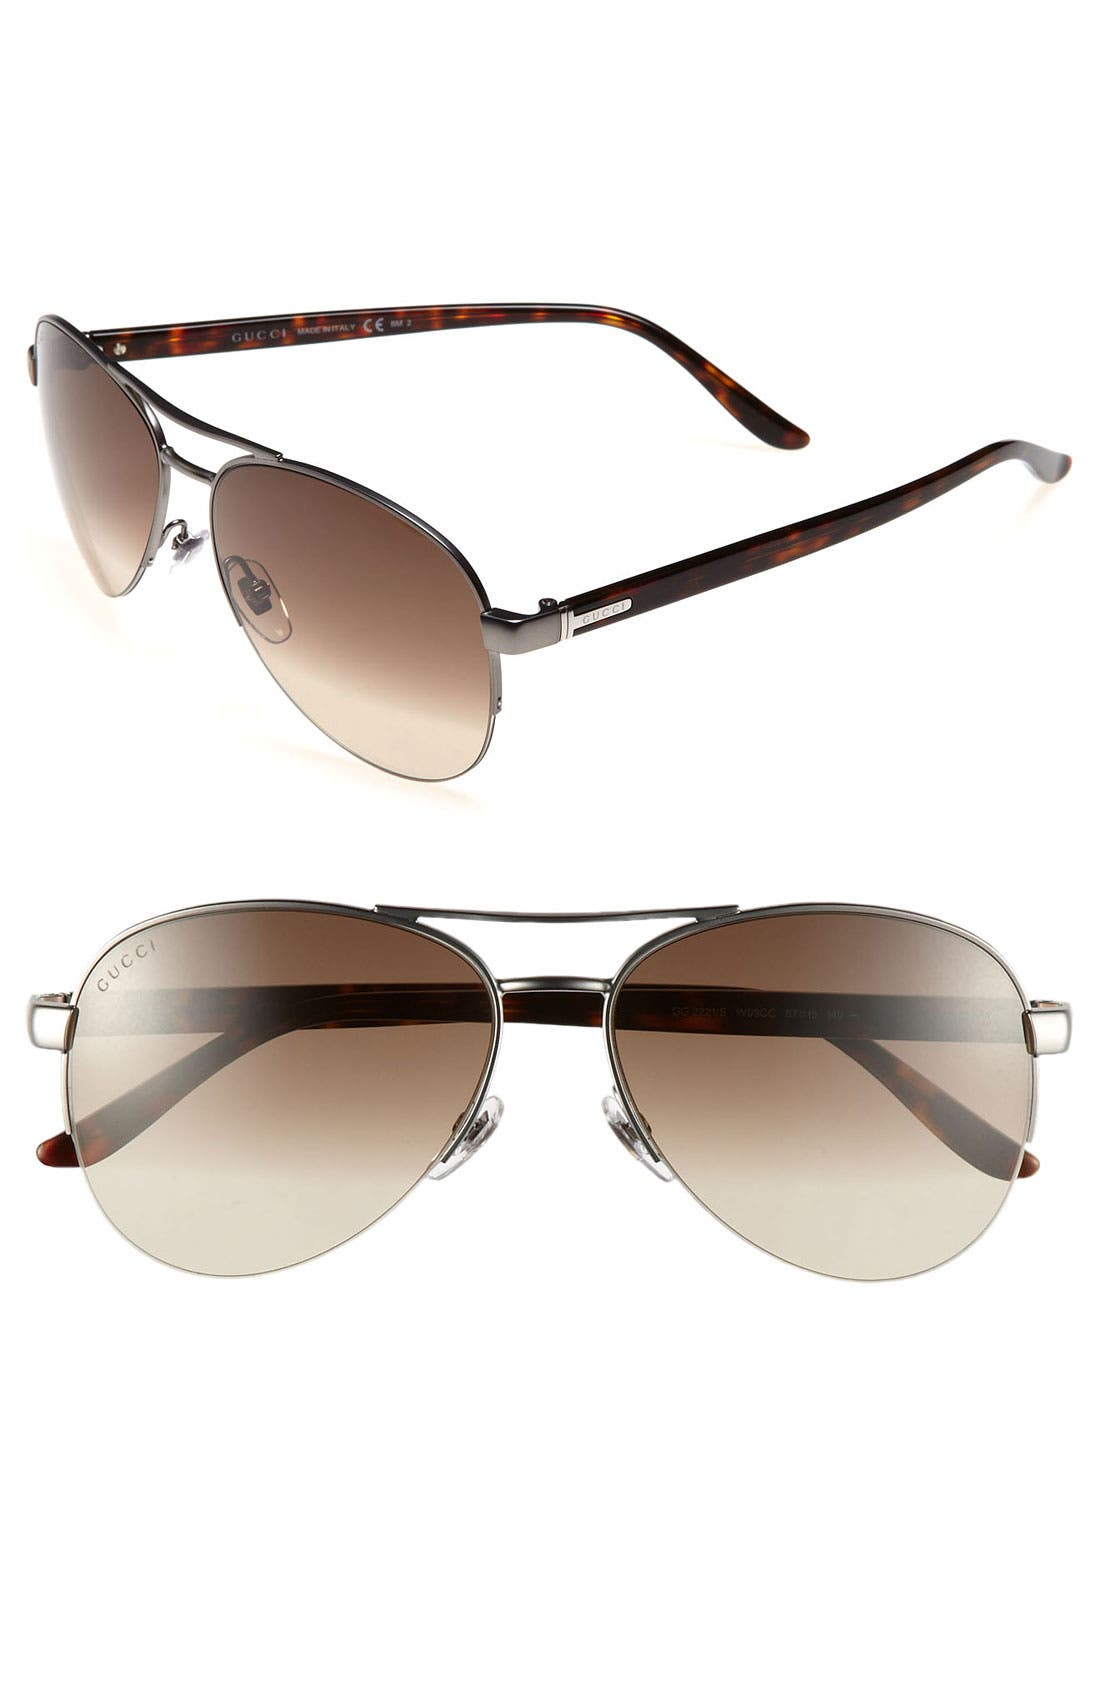 Alternate Image 1 Selected - Gucci Metal 57mm Aviator Sunglasses